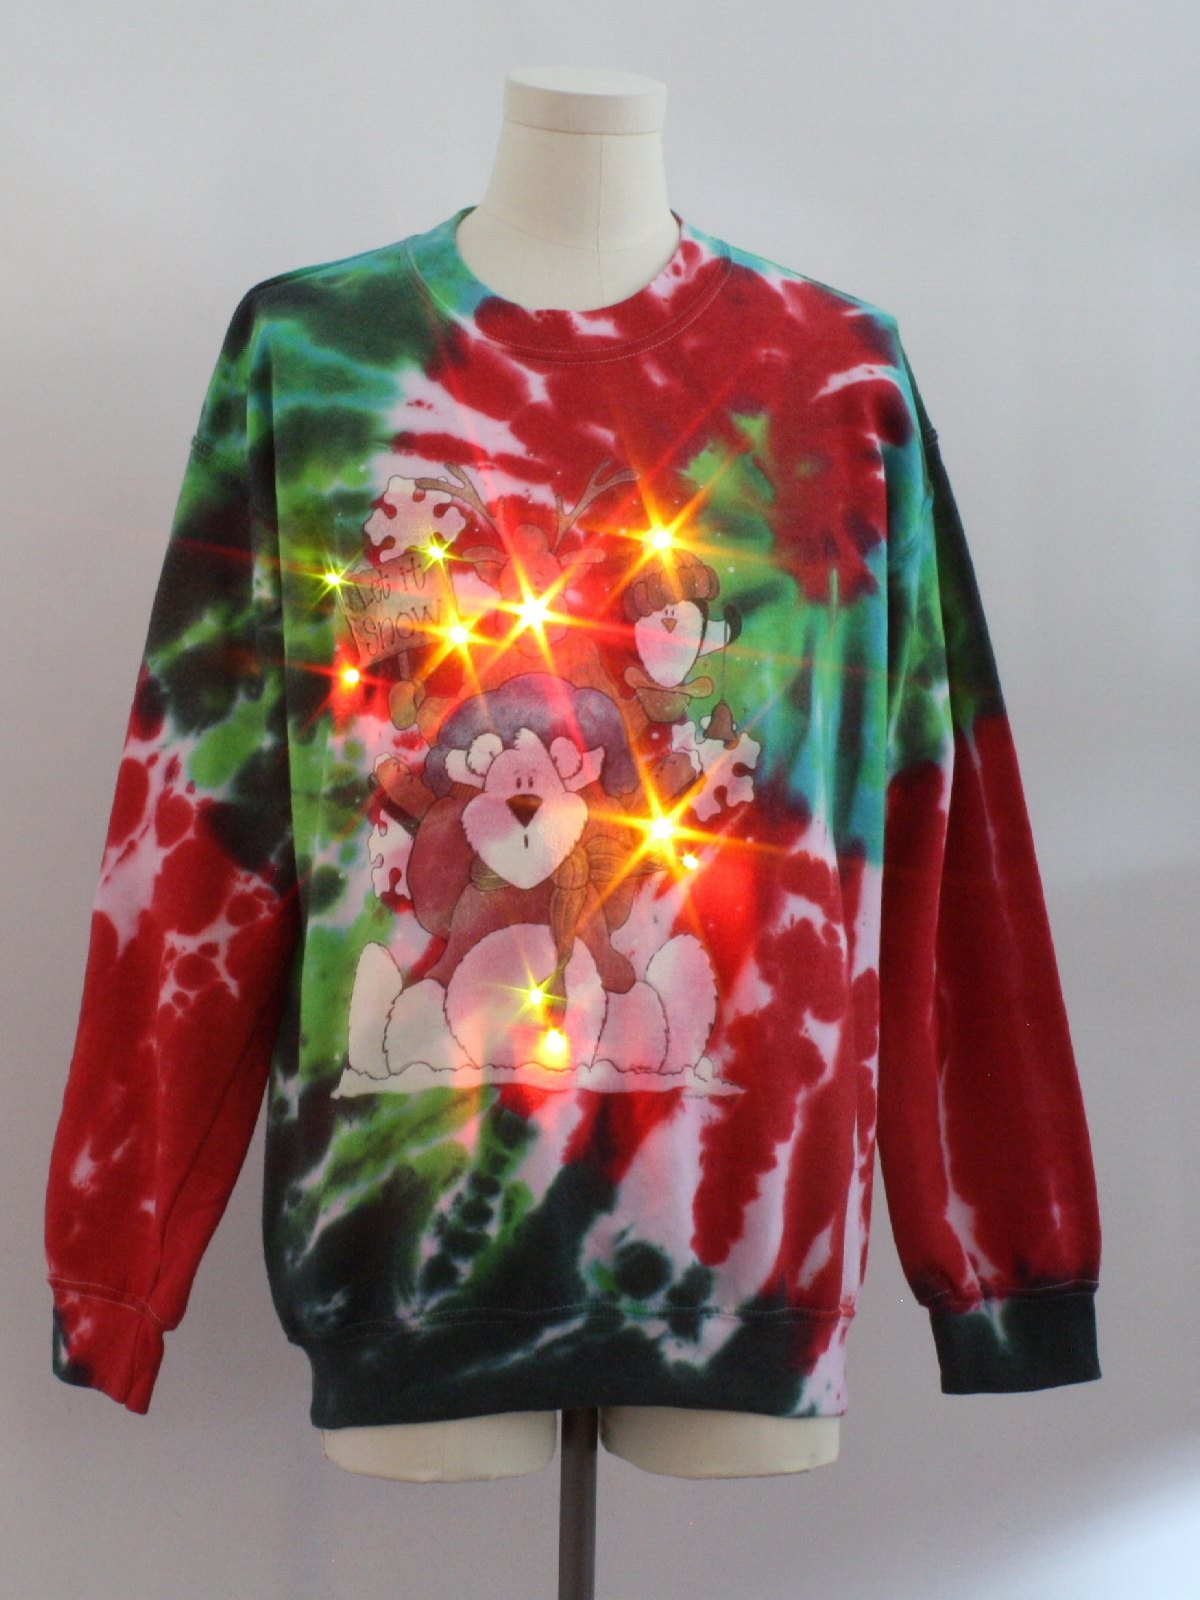 bear riffic tie dyed lightup ugly christmas sweatshirt gildan unisex green blue red and white background cotton polyester pullover hand tie dyed - Light Up Christmas Tie